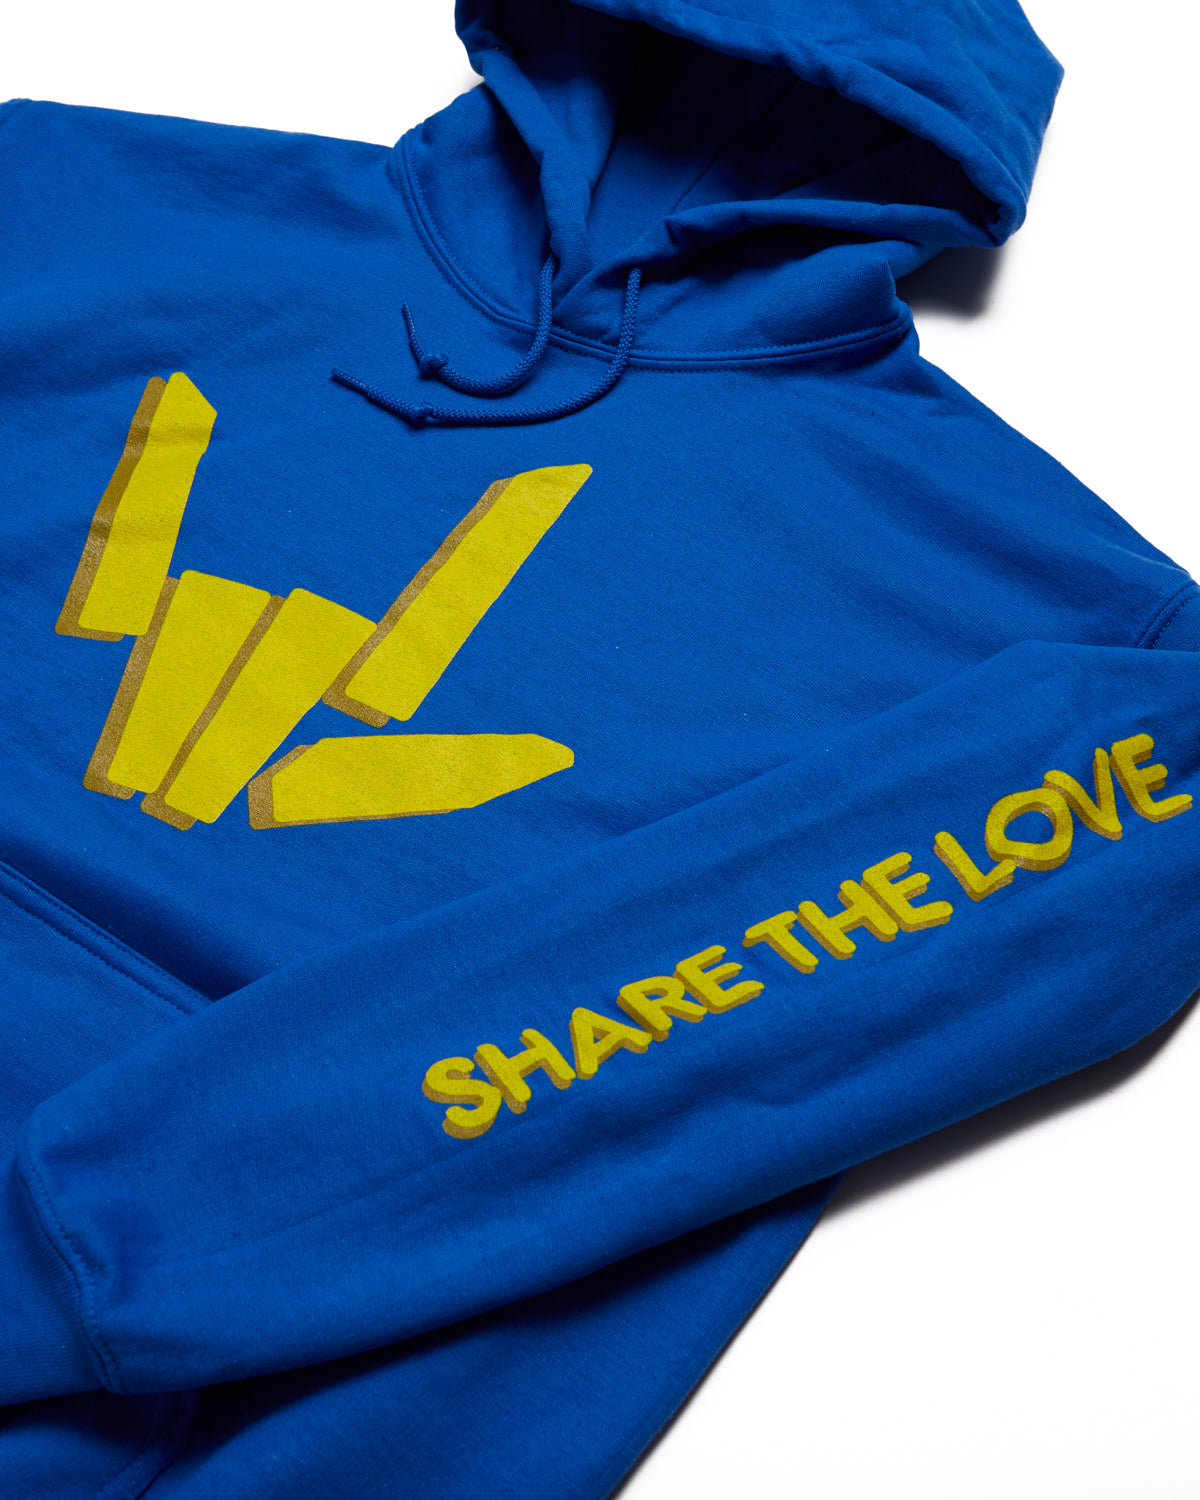 Share The Love Hoodie - Blue